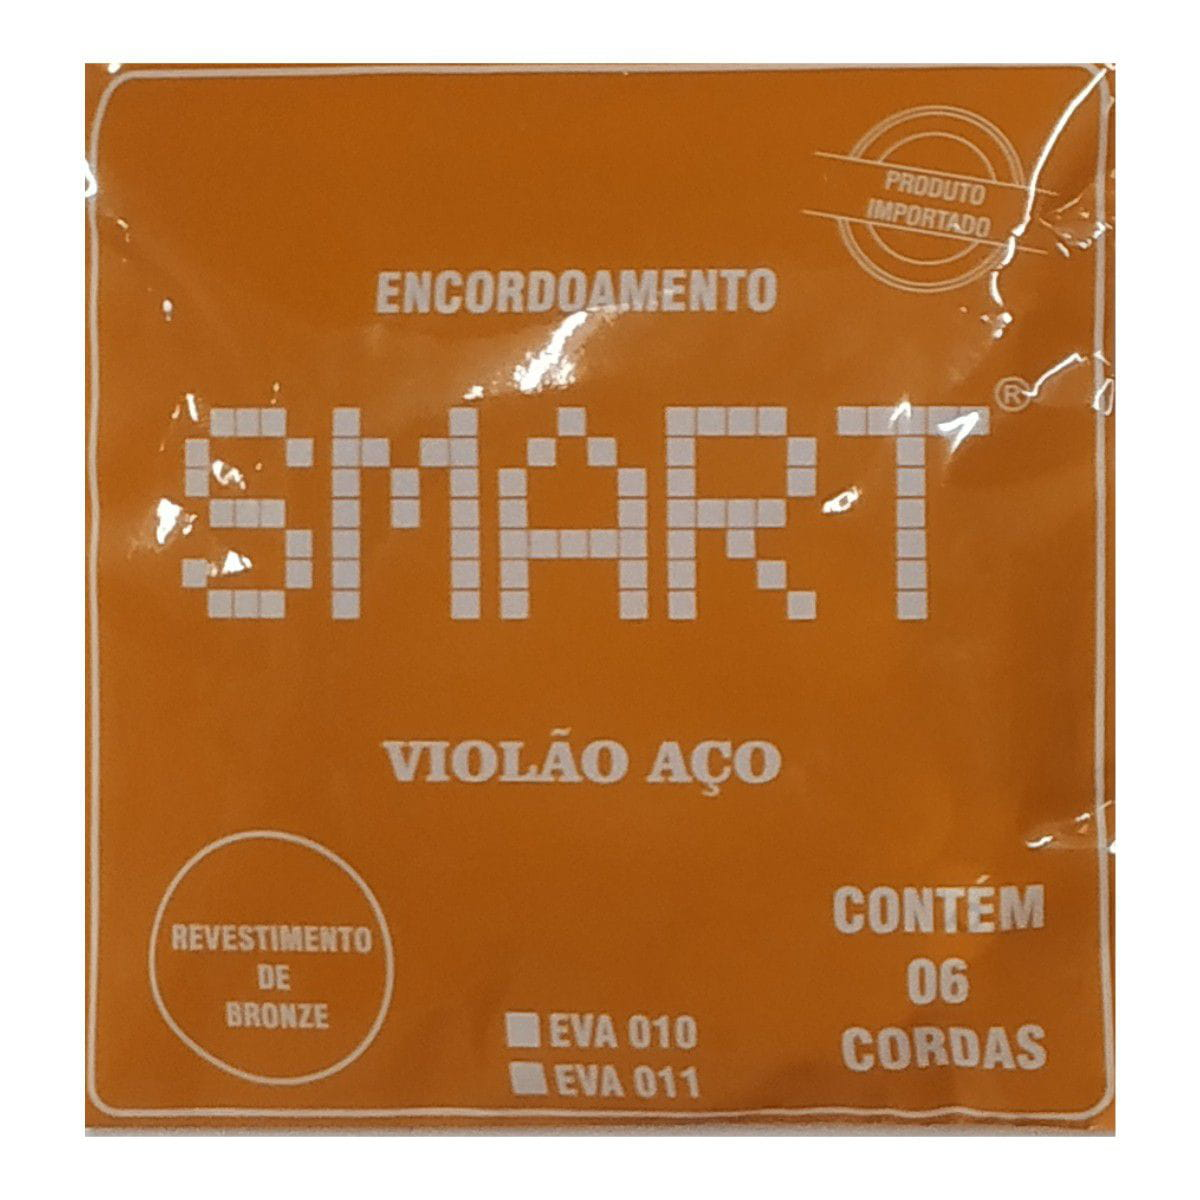 Encordoamento para Violão Aço Smart supersonora-pocket